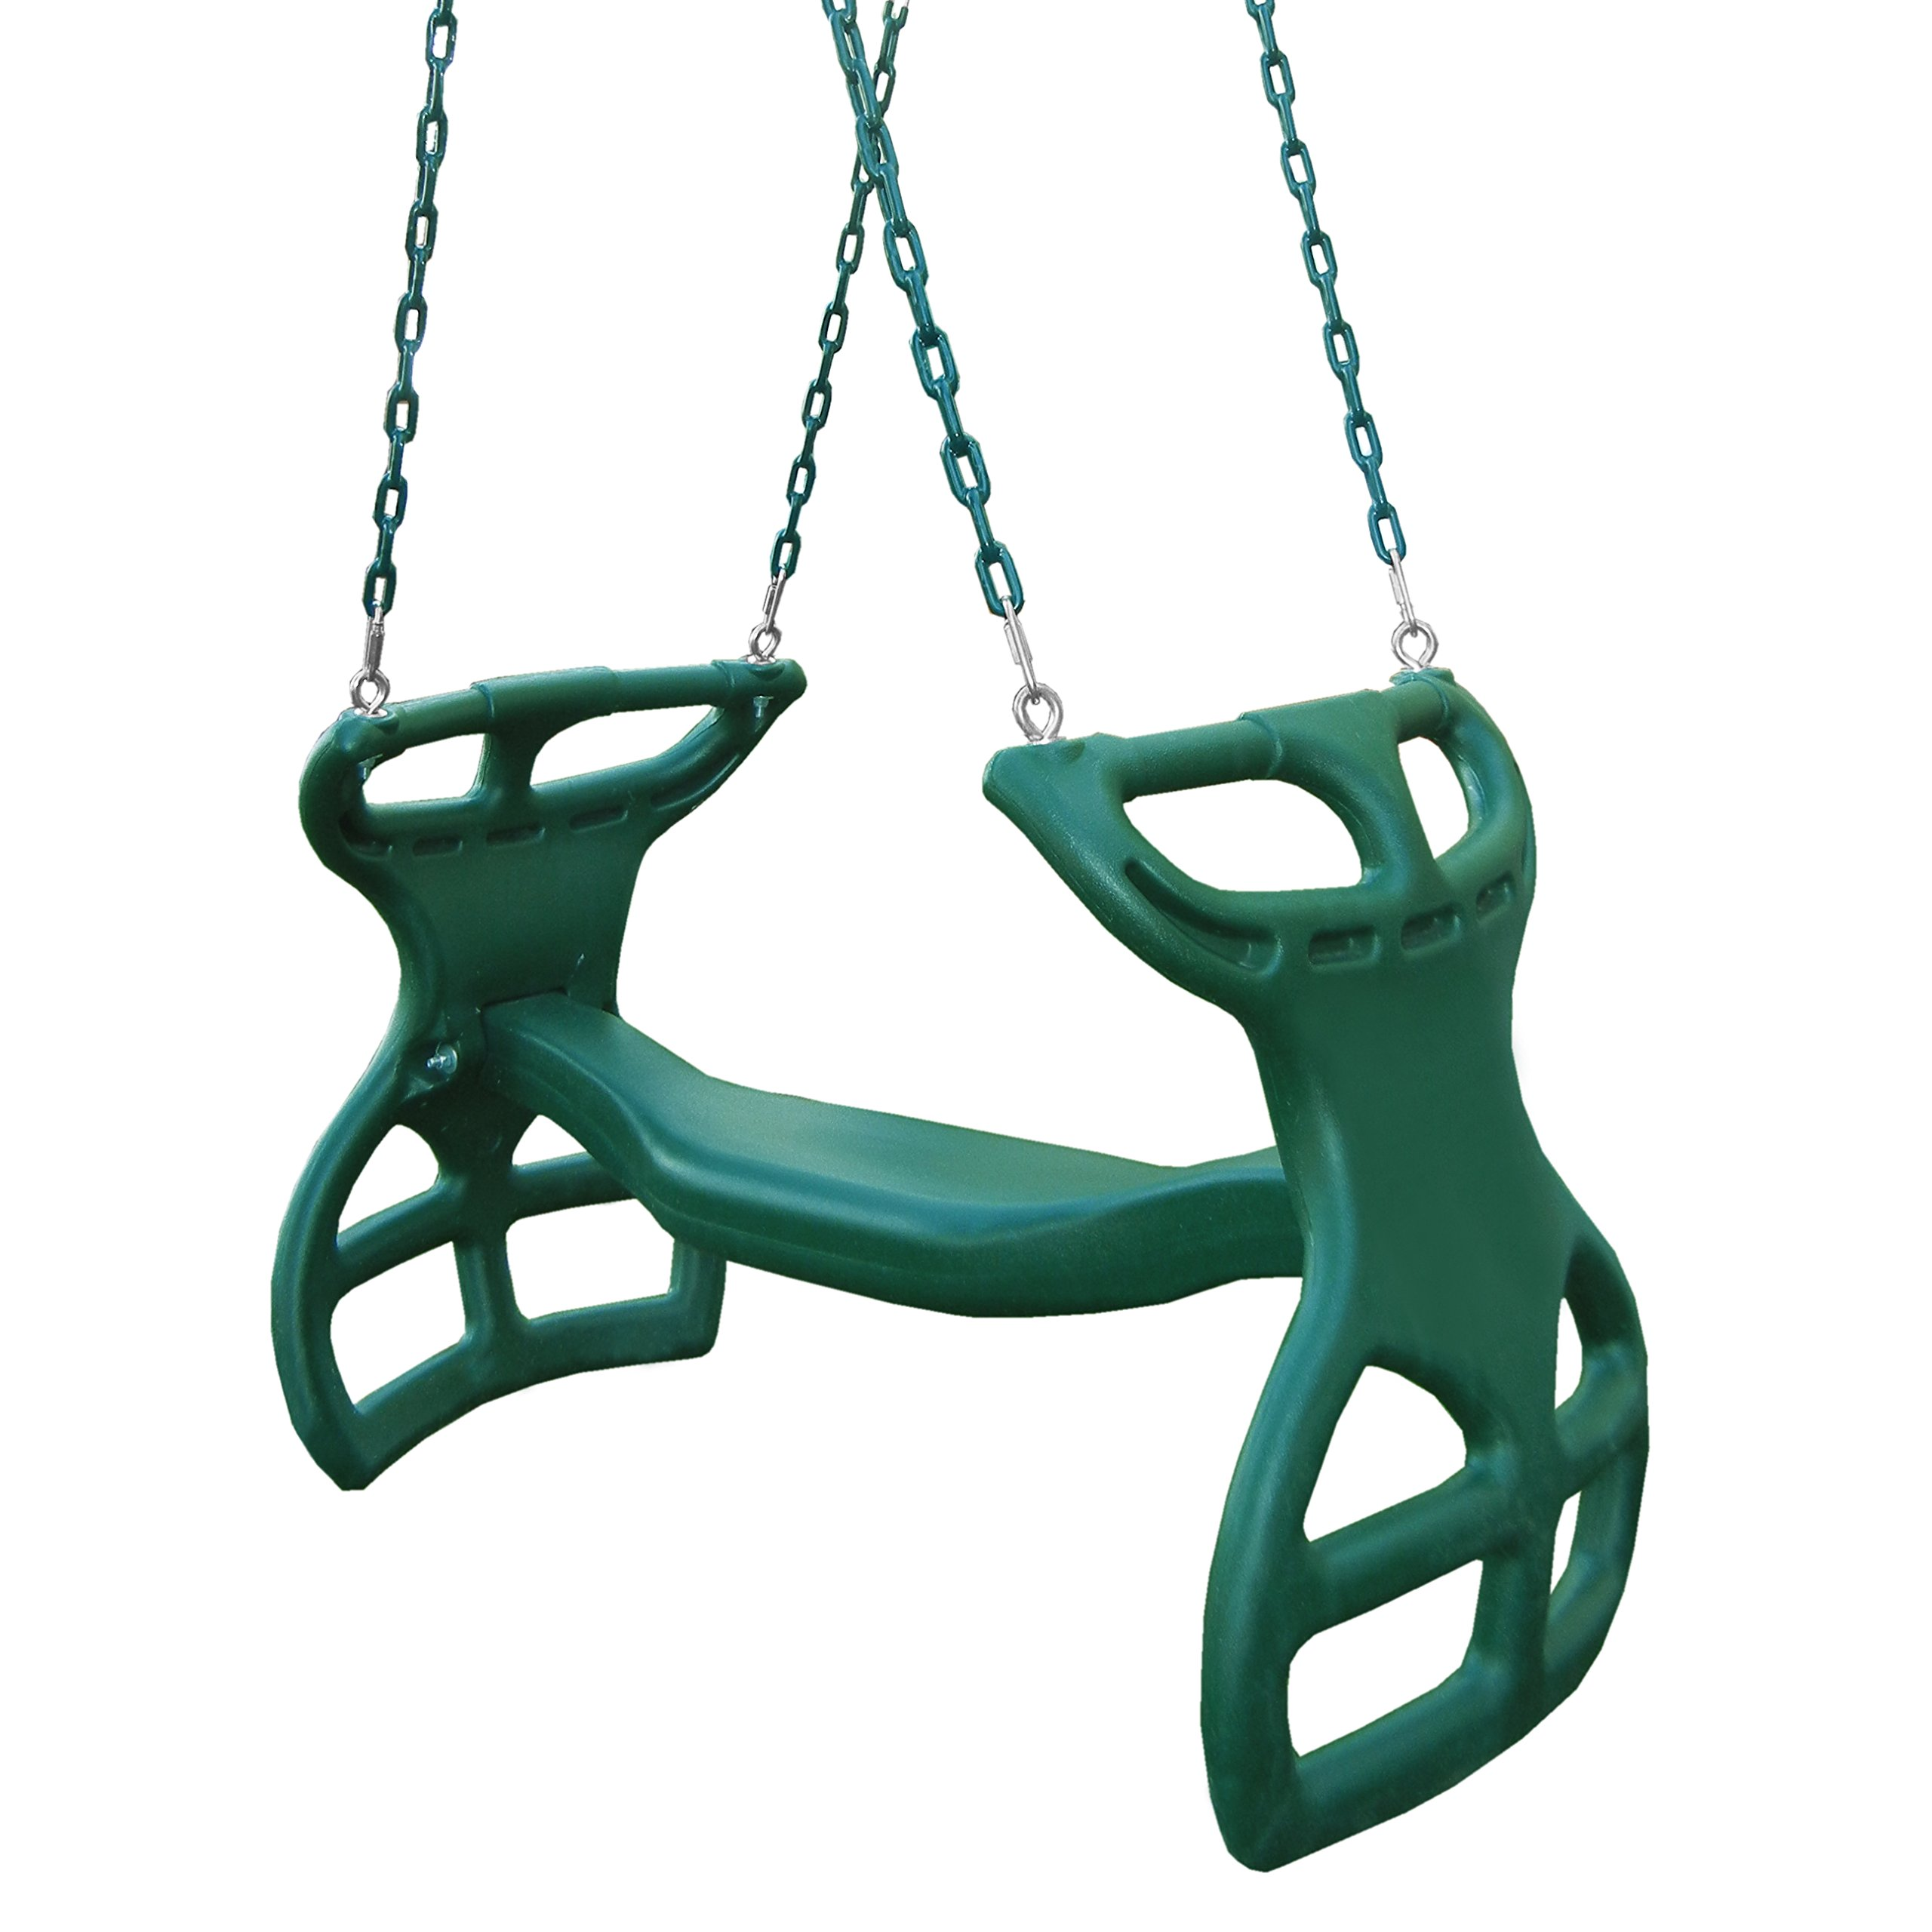 Swing-N-Slide Heavy Duty Two Person Dual Glider Swing, with Coated Chains to Prevent Pinching